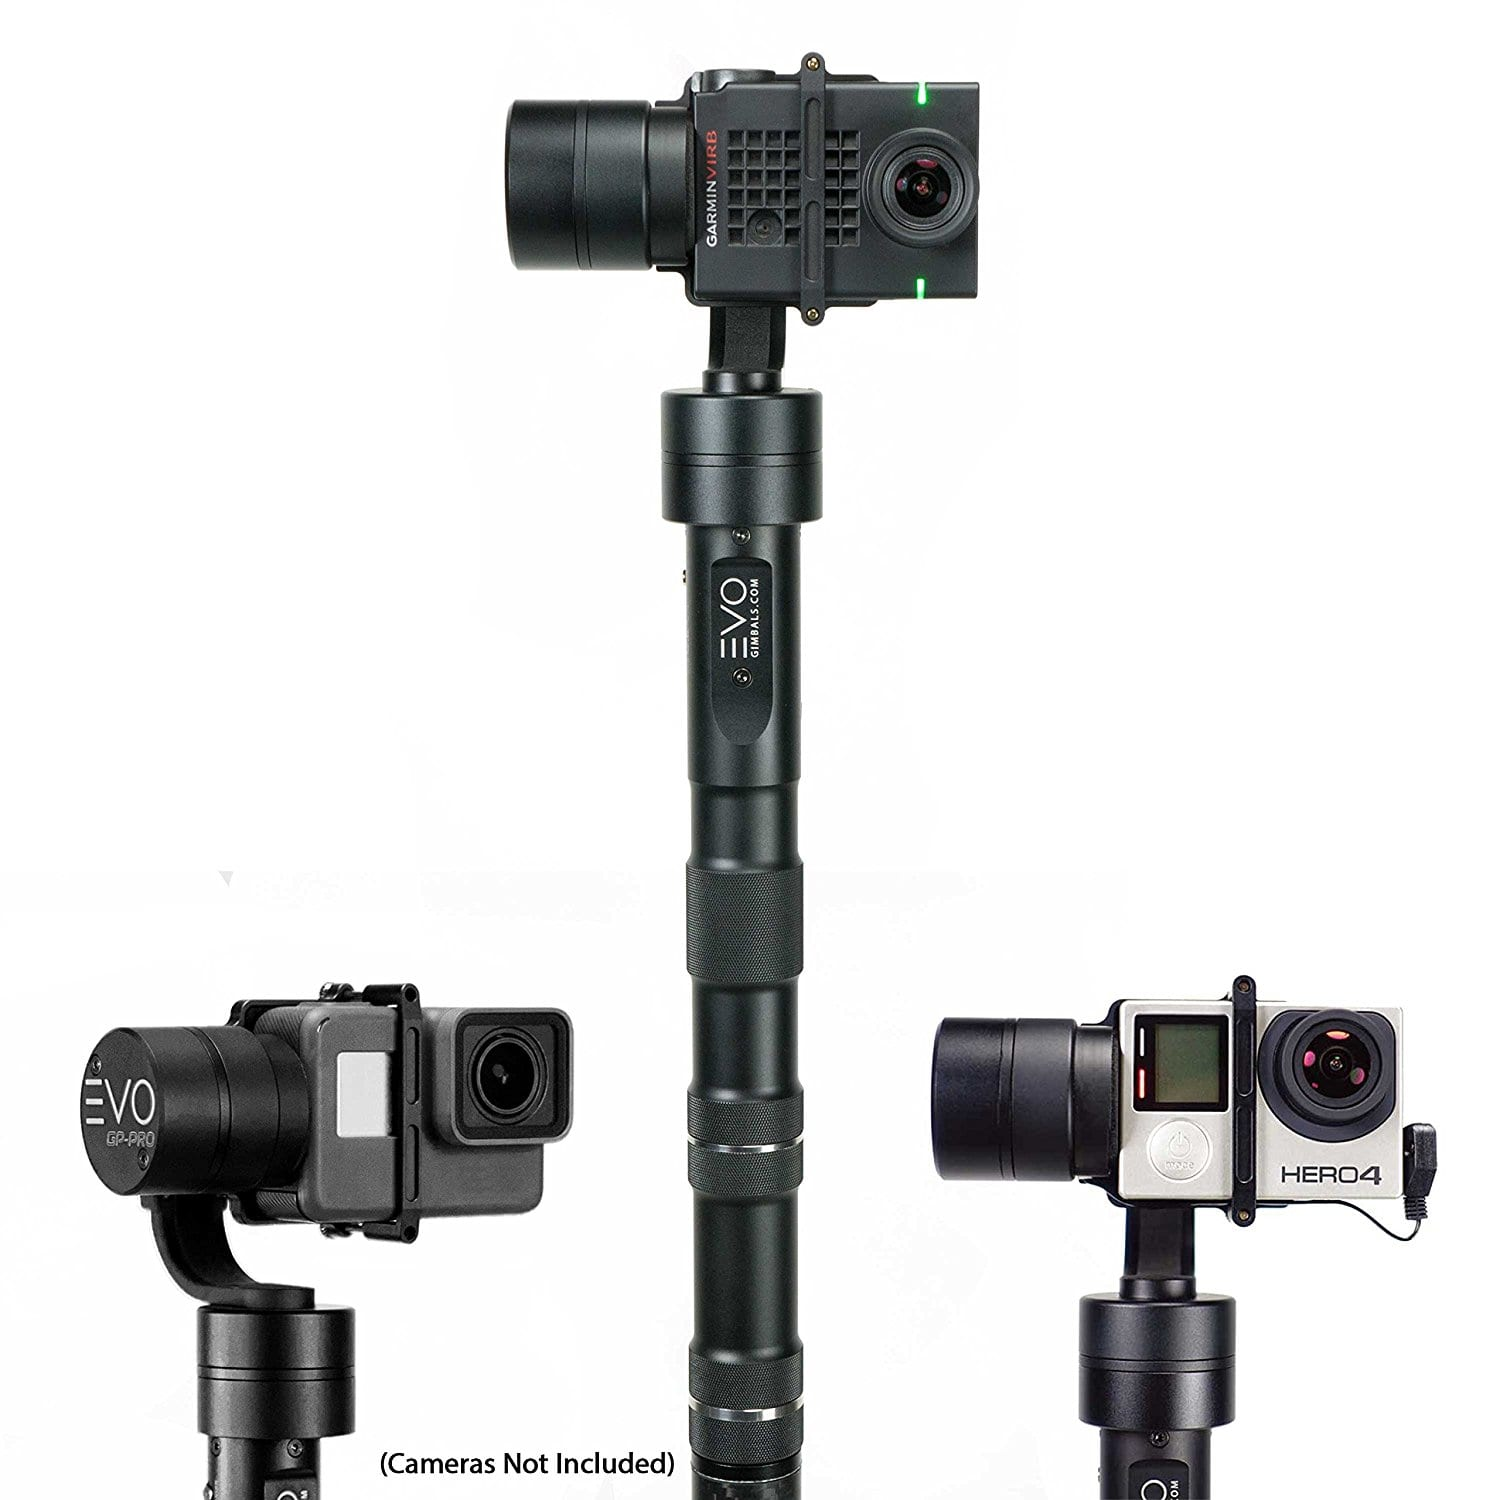 Top 8 Most Stabilized GoPro Gimbals 2018 Reviews